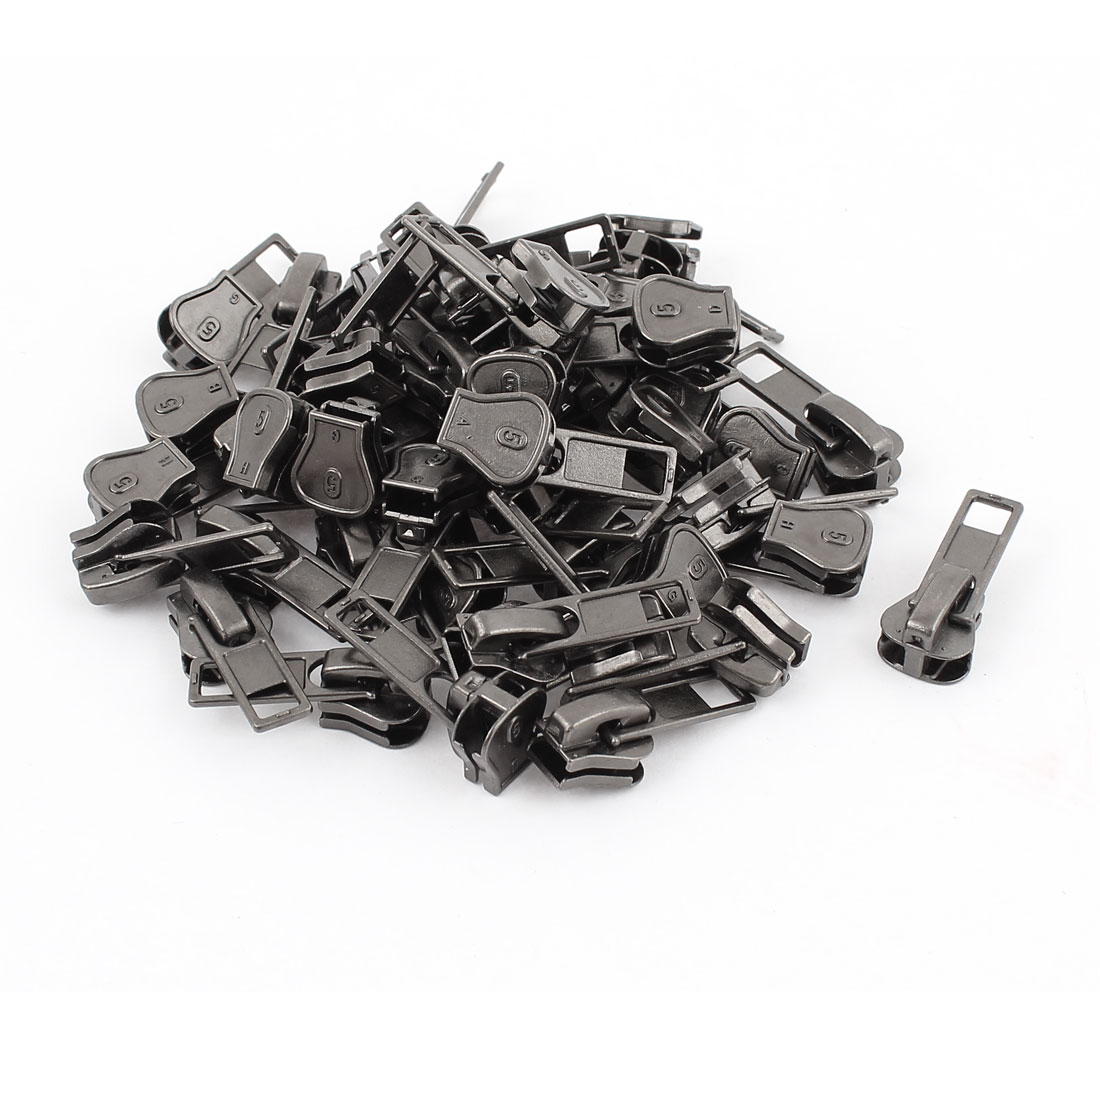 Clothes Jackets Tents Purses Pull Tab Zipper Slider Repair Kit Gray 50 PCS